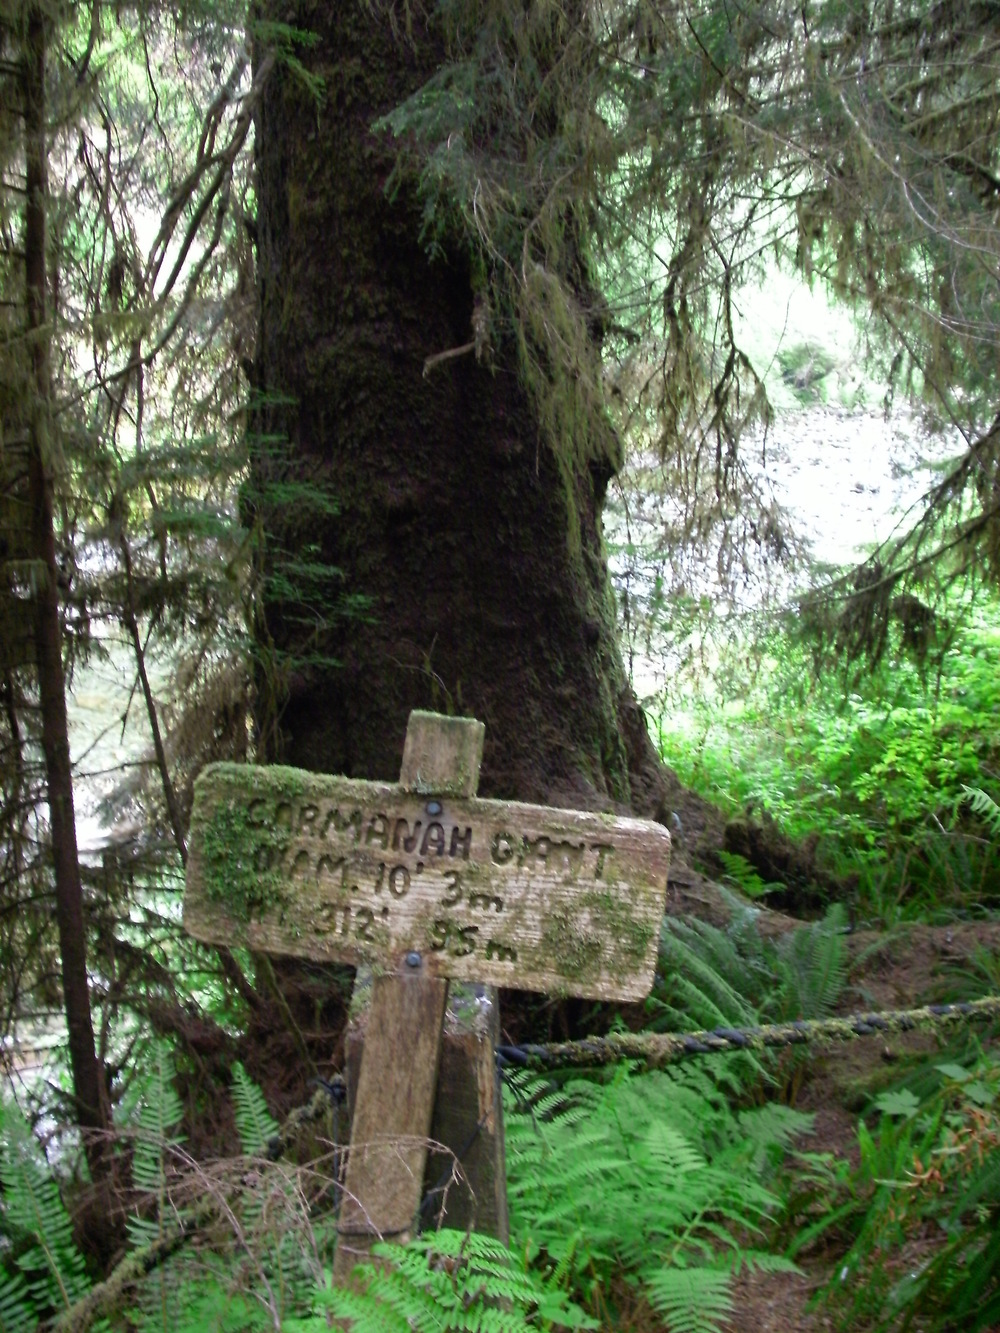 Carmanah Giant, Canada's tallest known tree, Carmanah Creek, BC